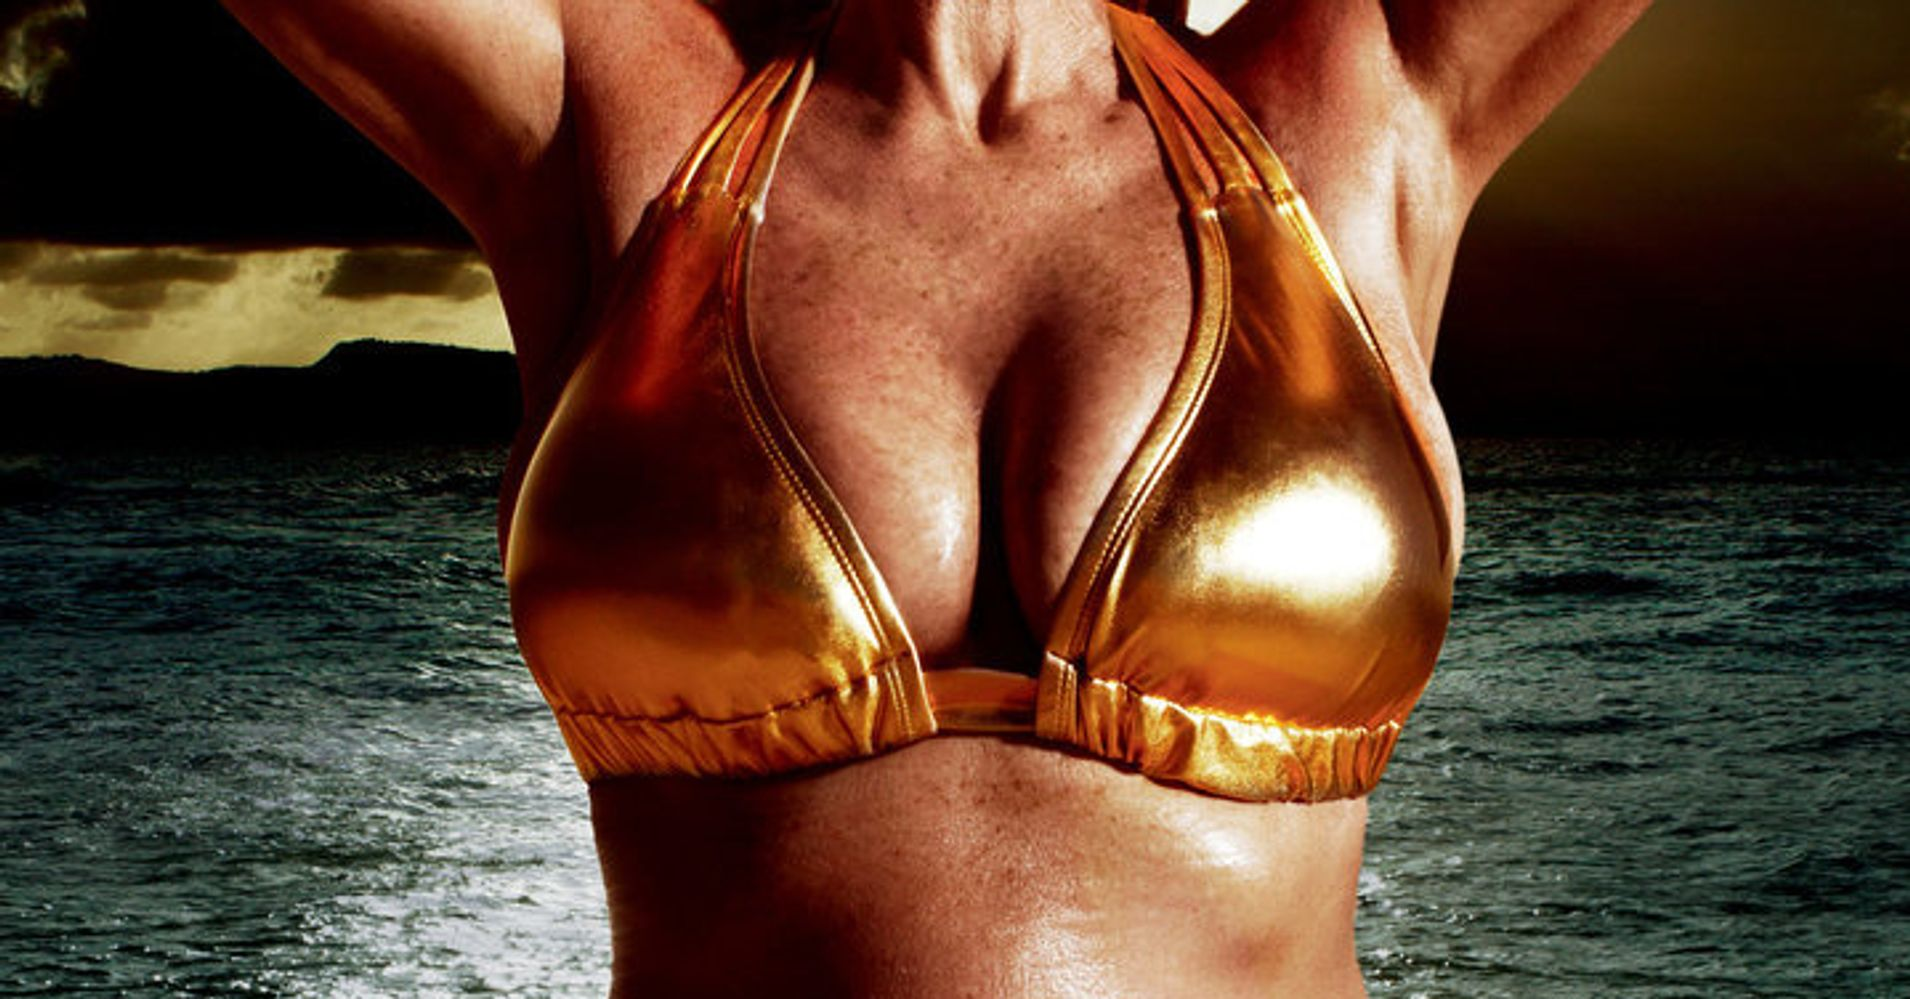 50+ Women Can't Wear Bikinis? Not Anymore!